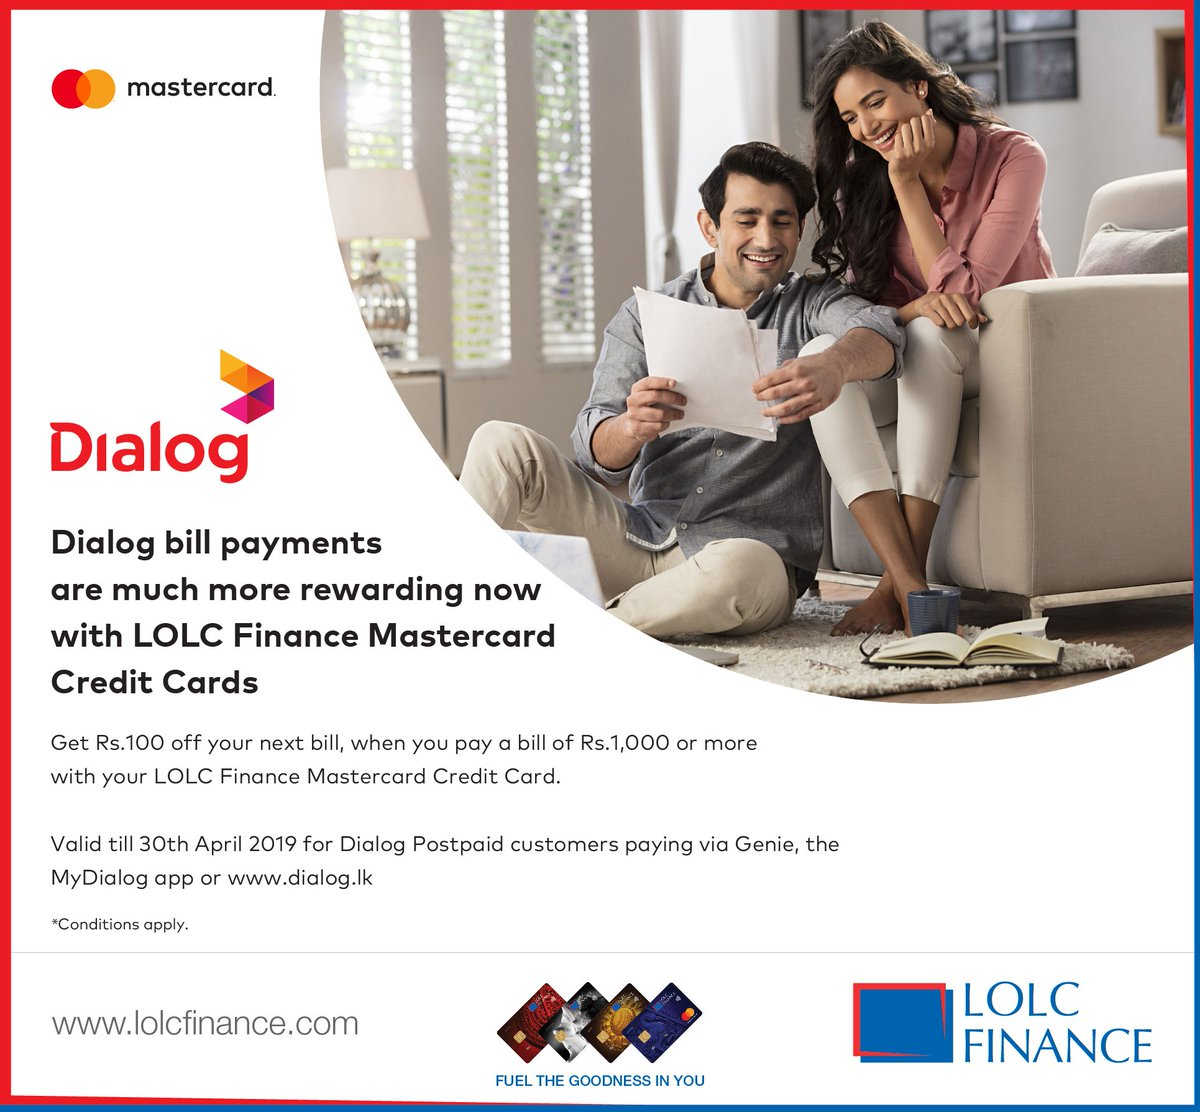 Get 100/- off your next Dialog bill payment, when you pay a